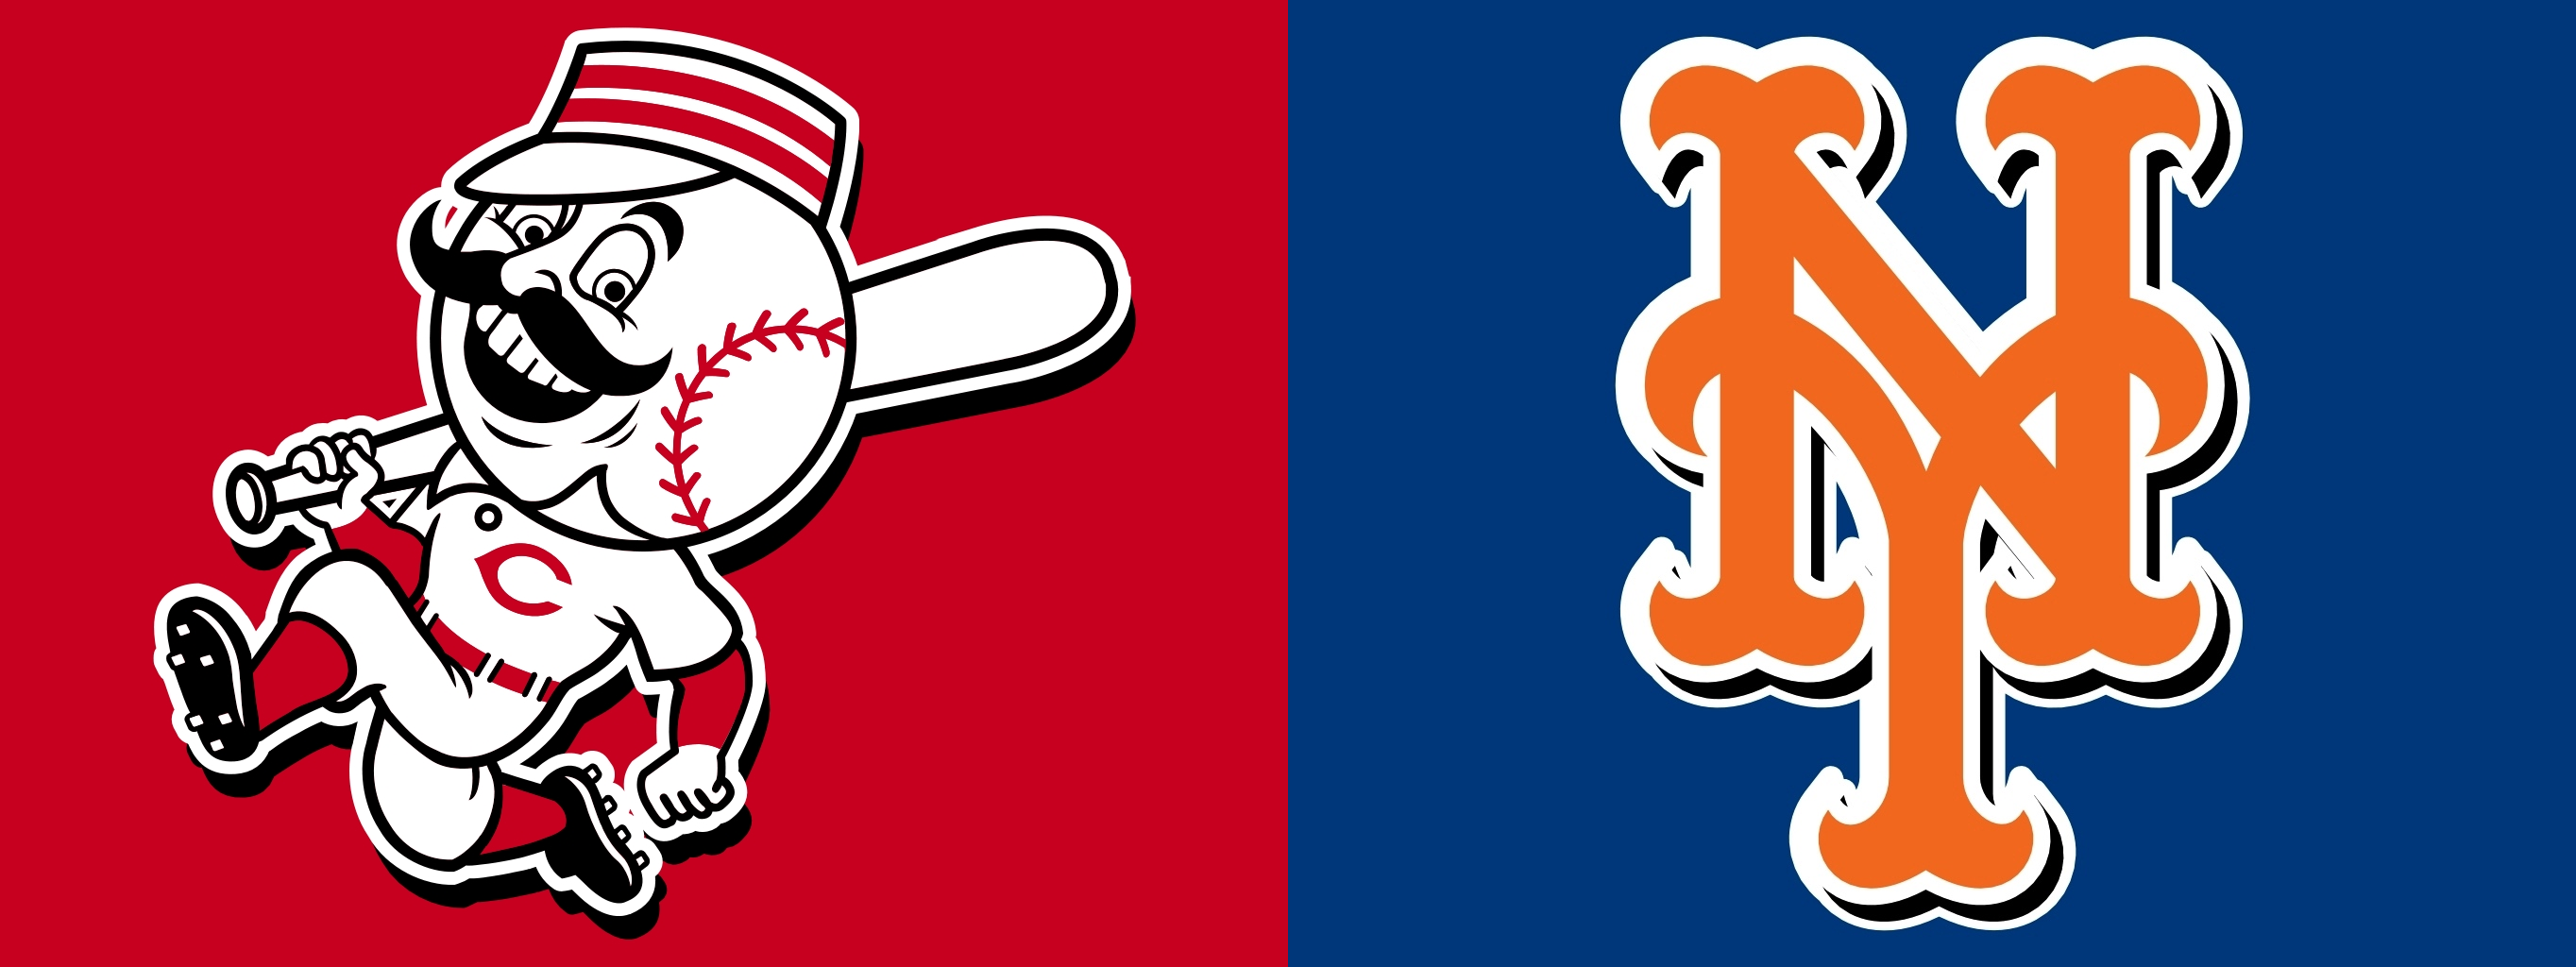 New York Mets Vs Cincinnati Reds Tickets Citi Field Flushing Ny Tixbag At Citi Field 123 Cincinnati Reds Tickets Cincinnati Reds Cincinnati Reds Schedule